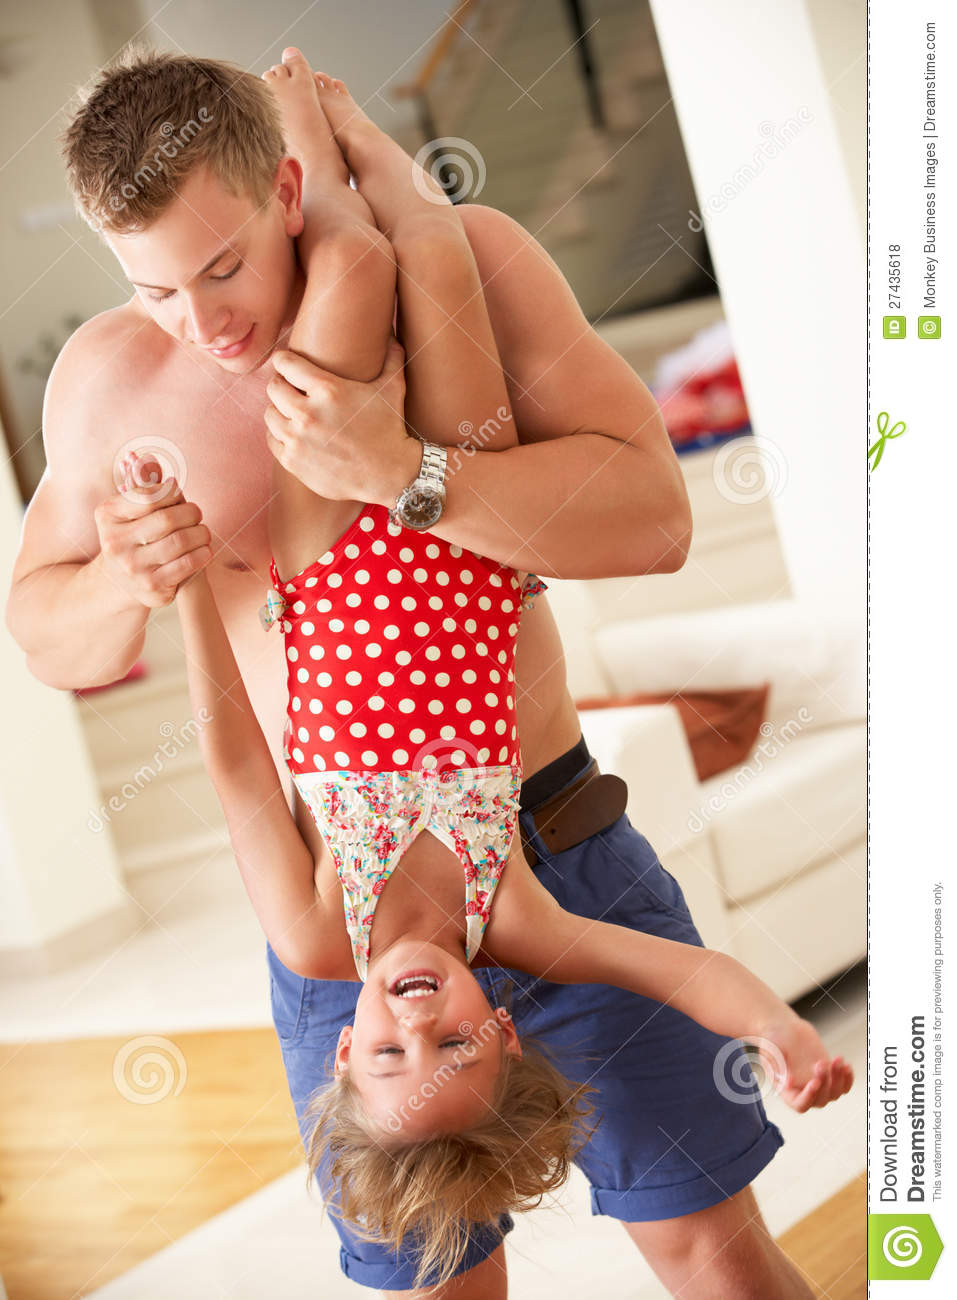 Dad Doing His Daughter Upside Down: http://cumception.com/dad-doing-his-daughter-upside-down/